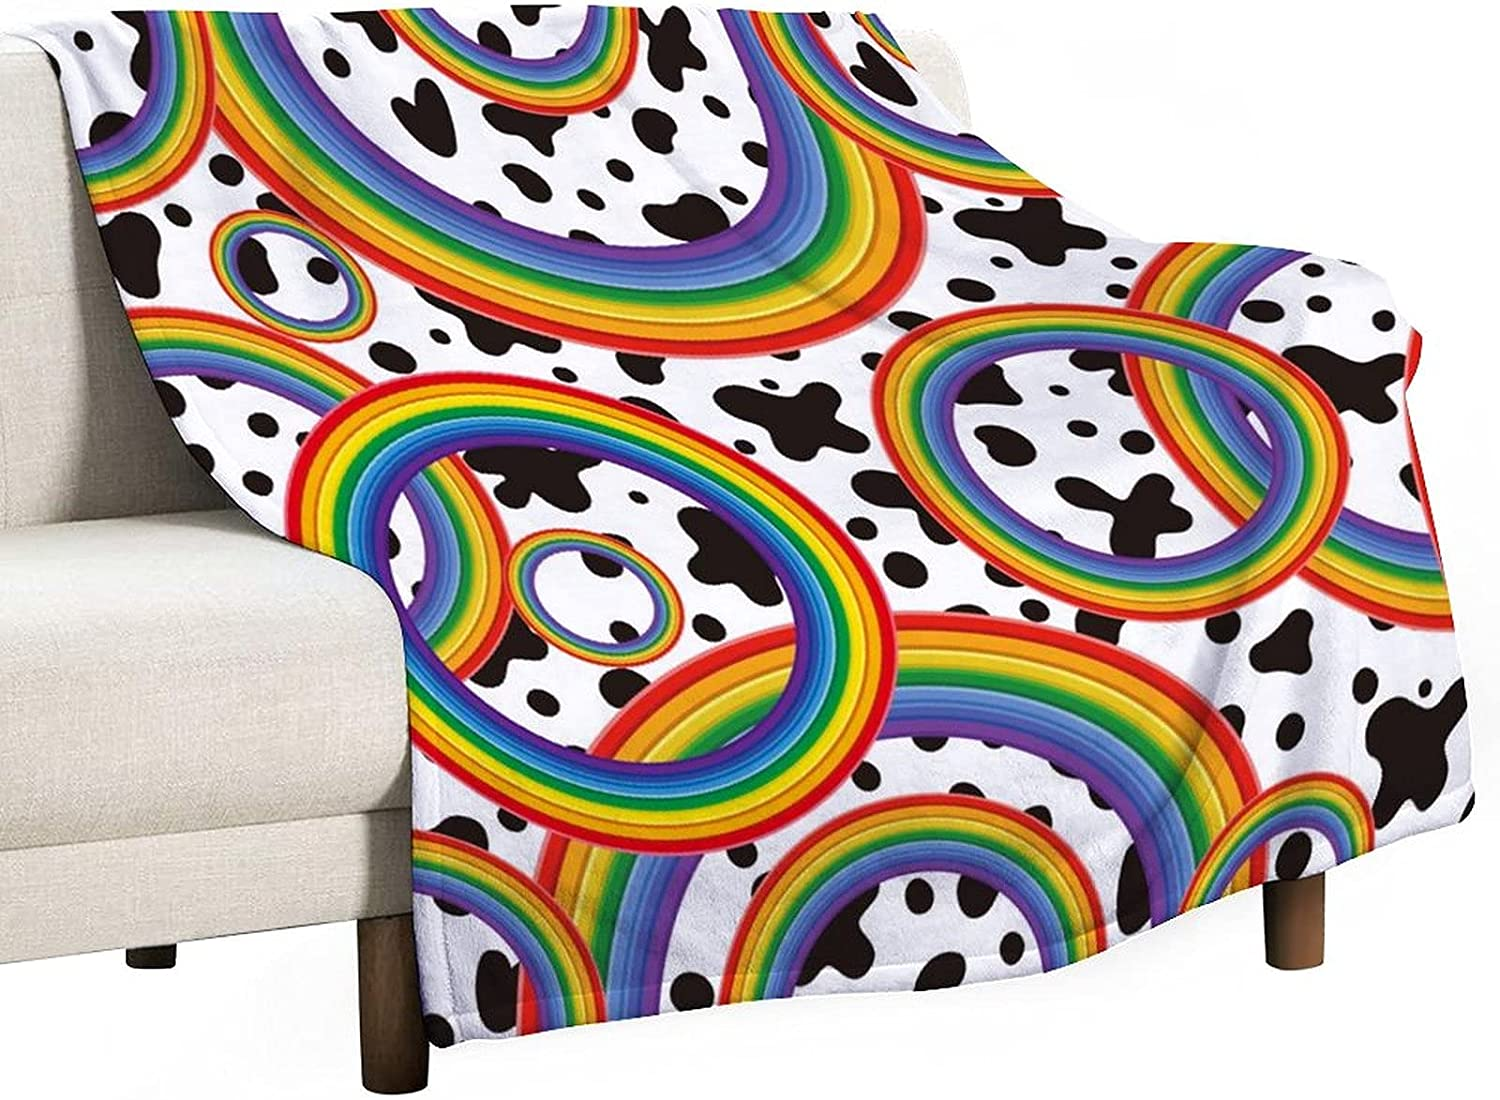 Diuangfoong Flannel Blanket Rainb Single-Sided Max 49% OFF Printing NEW before selling ☆